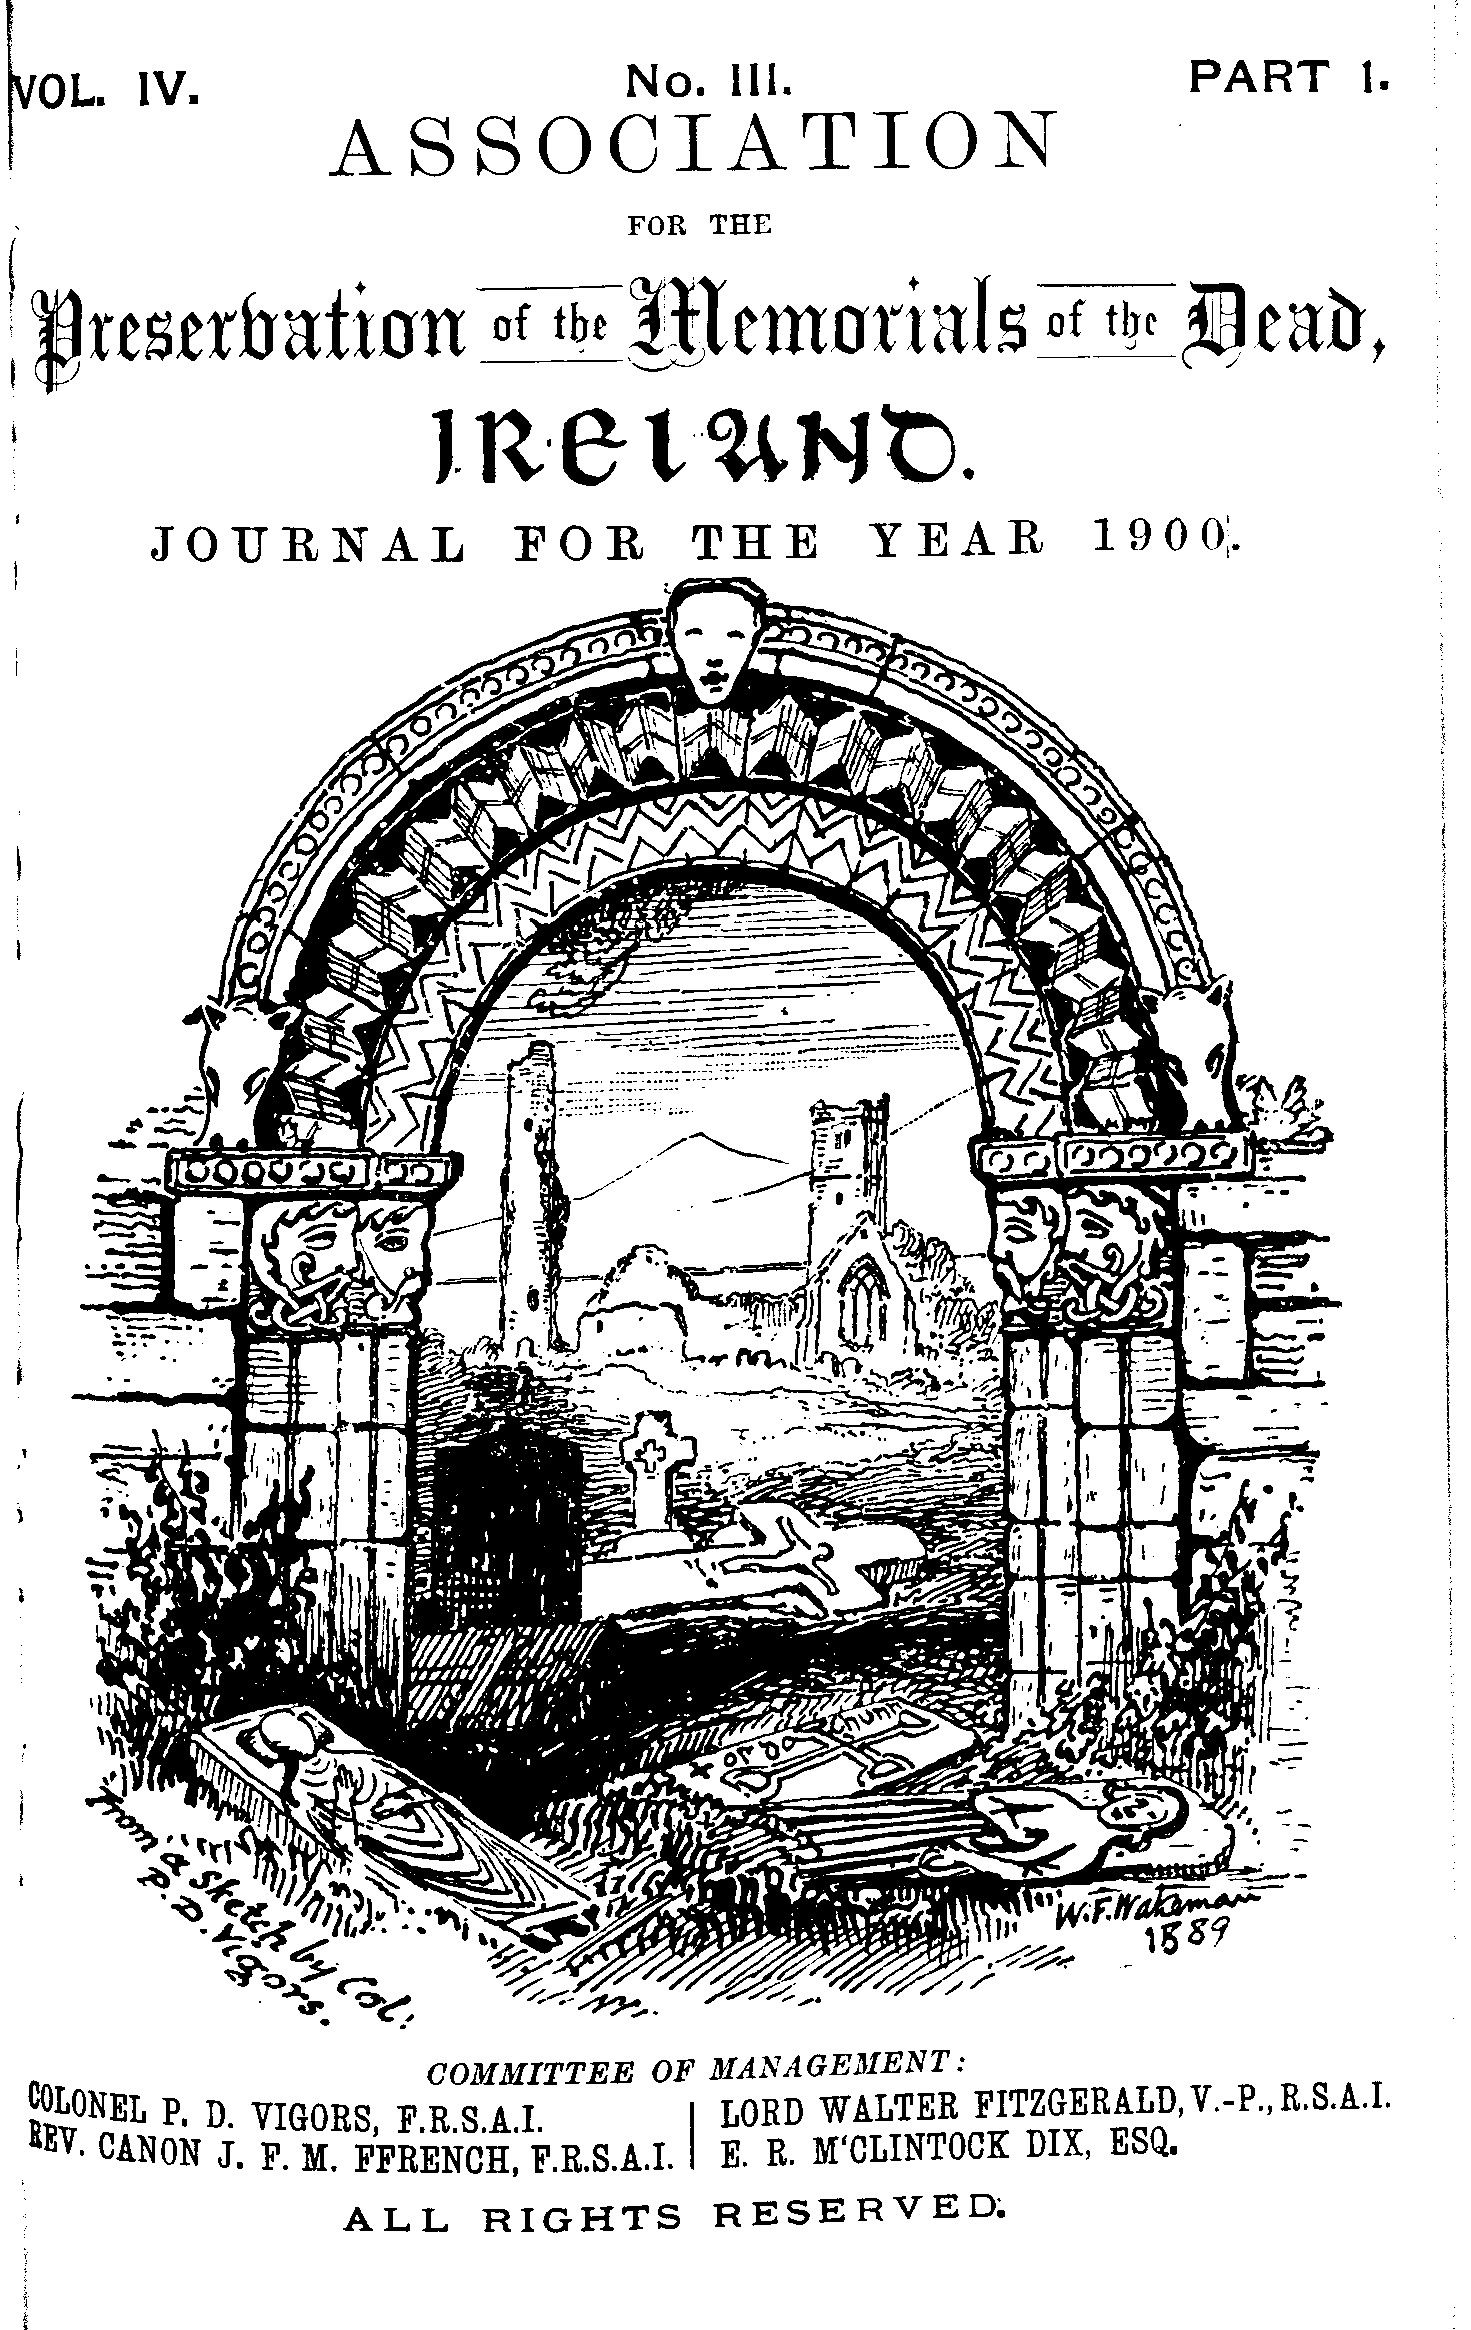 photo of The Journal of the Association for the Preservation of the Memorials of the Dead Vol IV for the years 1898-1900. 1900